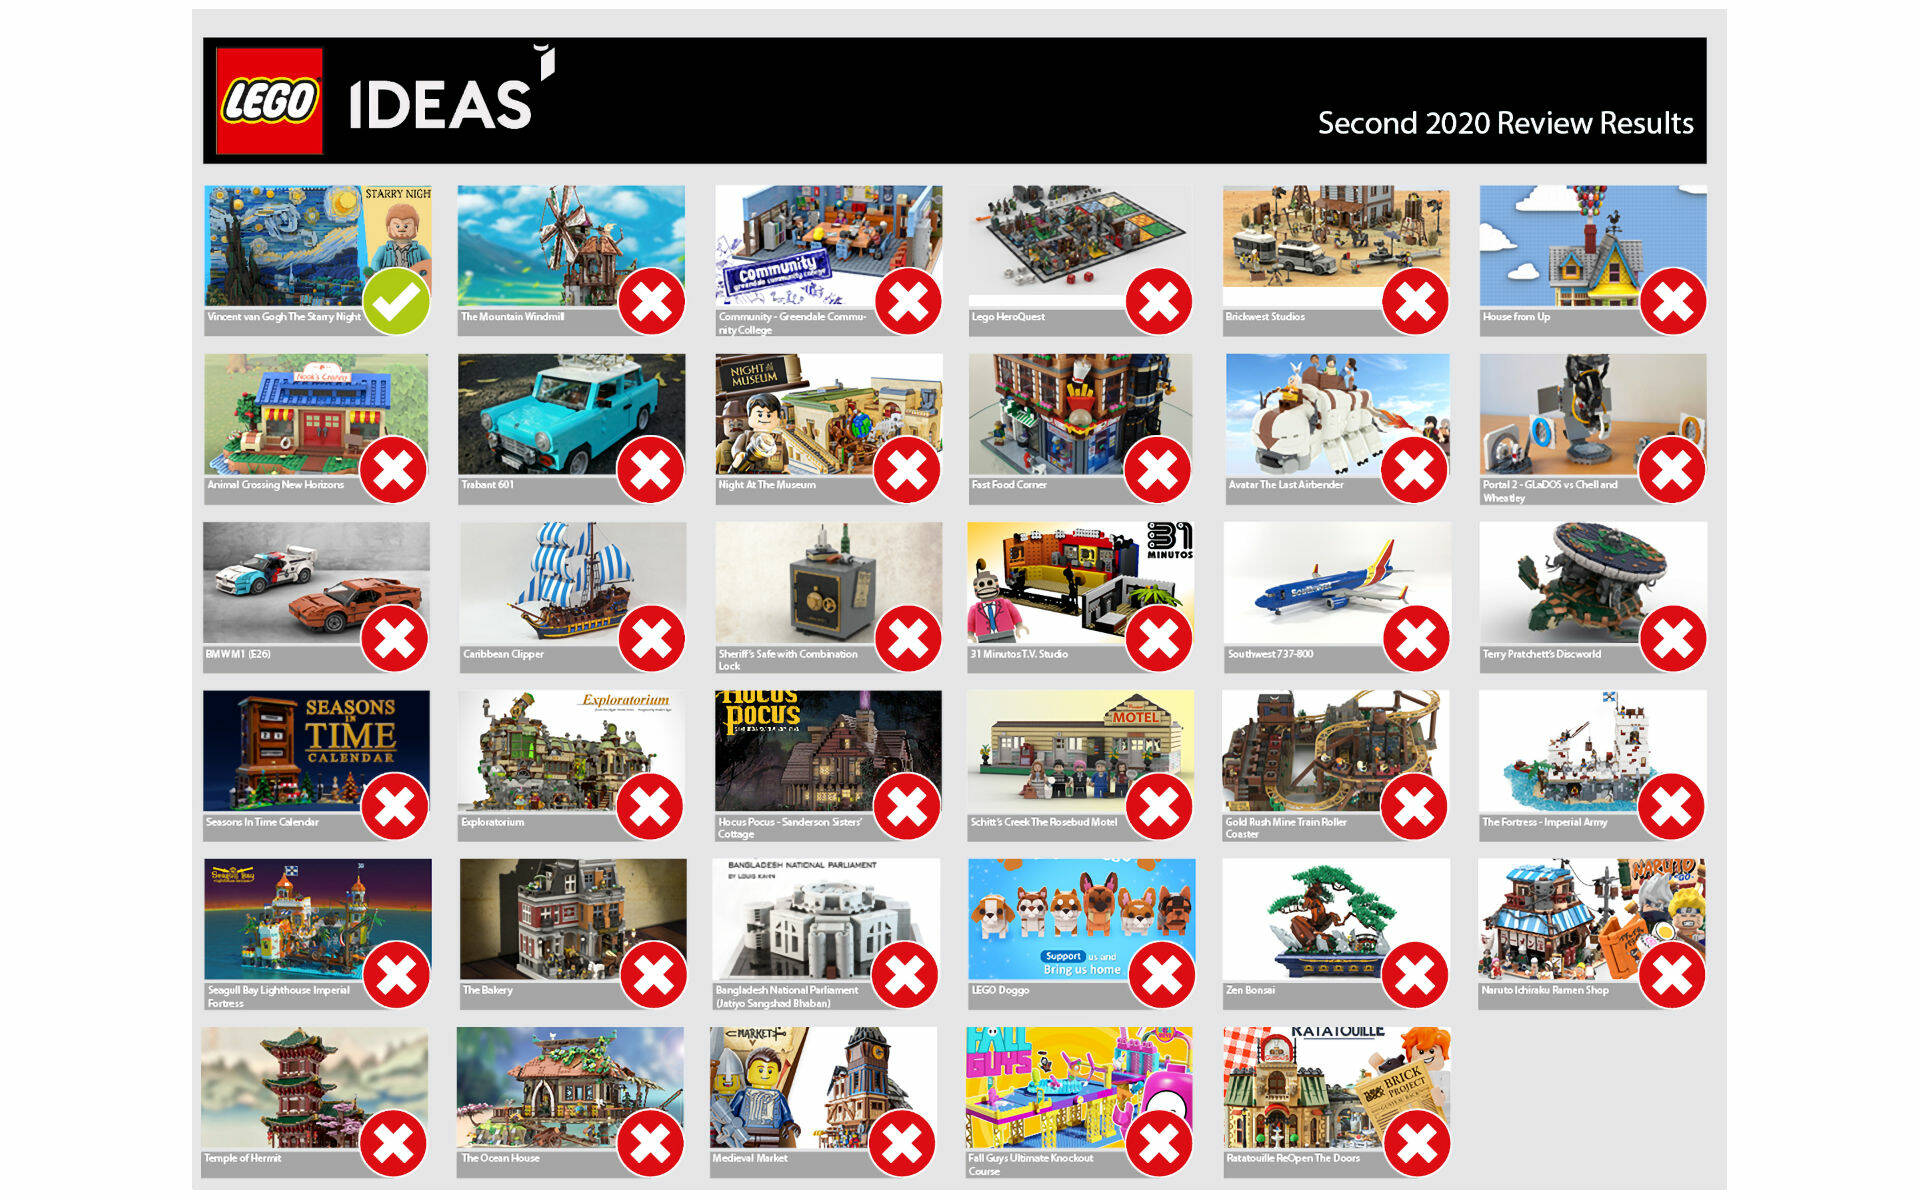 LEGO IDEAS SECONDA REVIEW 2020